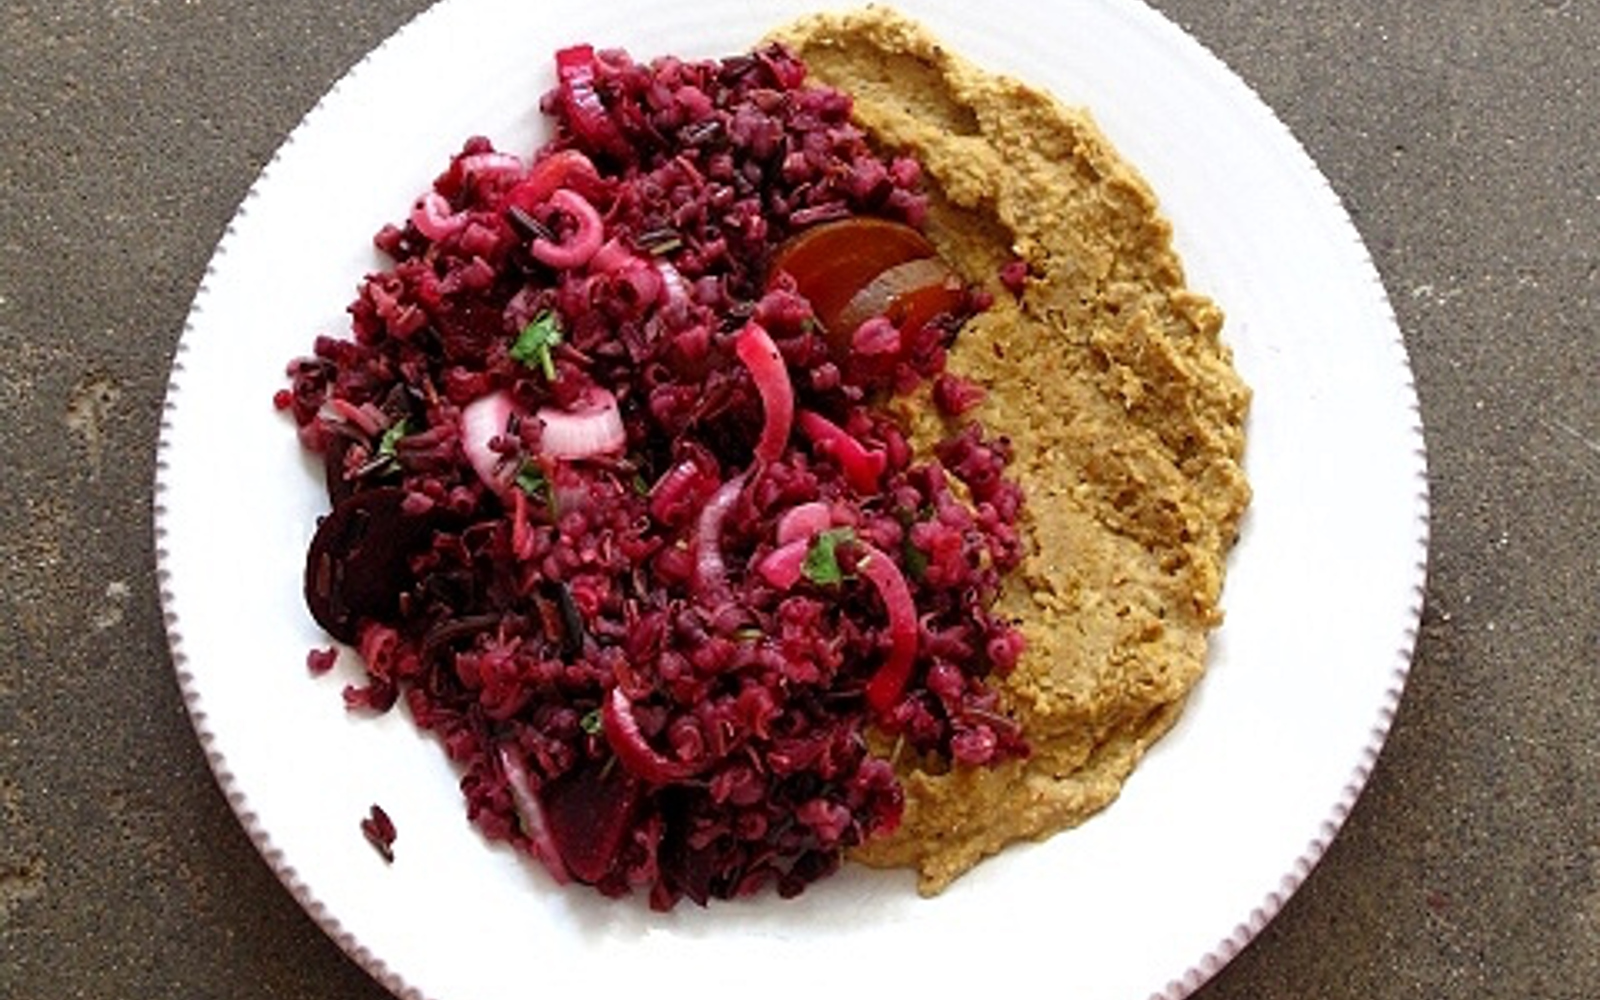 Vegan Gluten-Free Wild Rice and Beet Salad with Muhammara Bean Purée